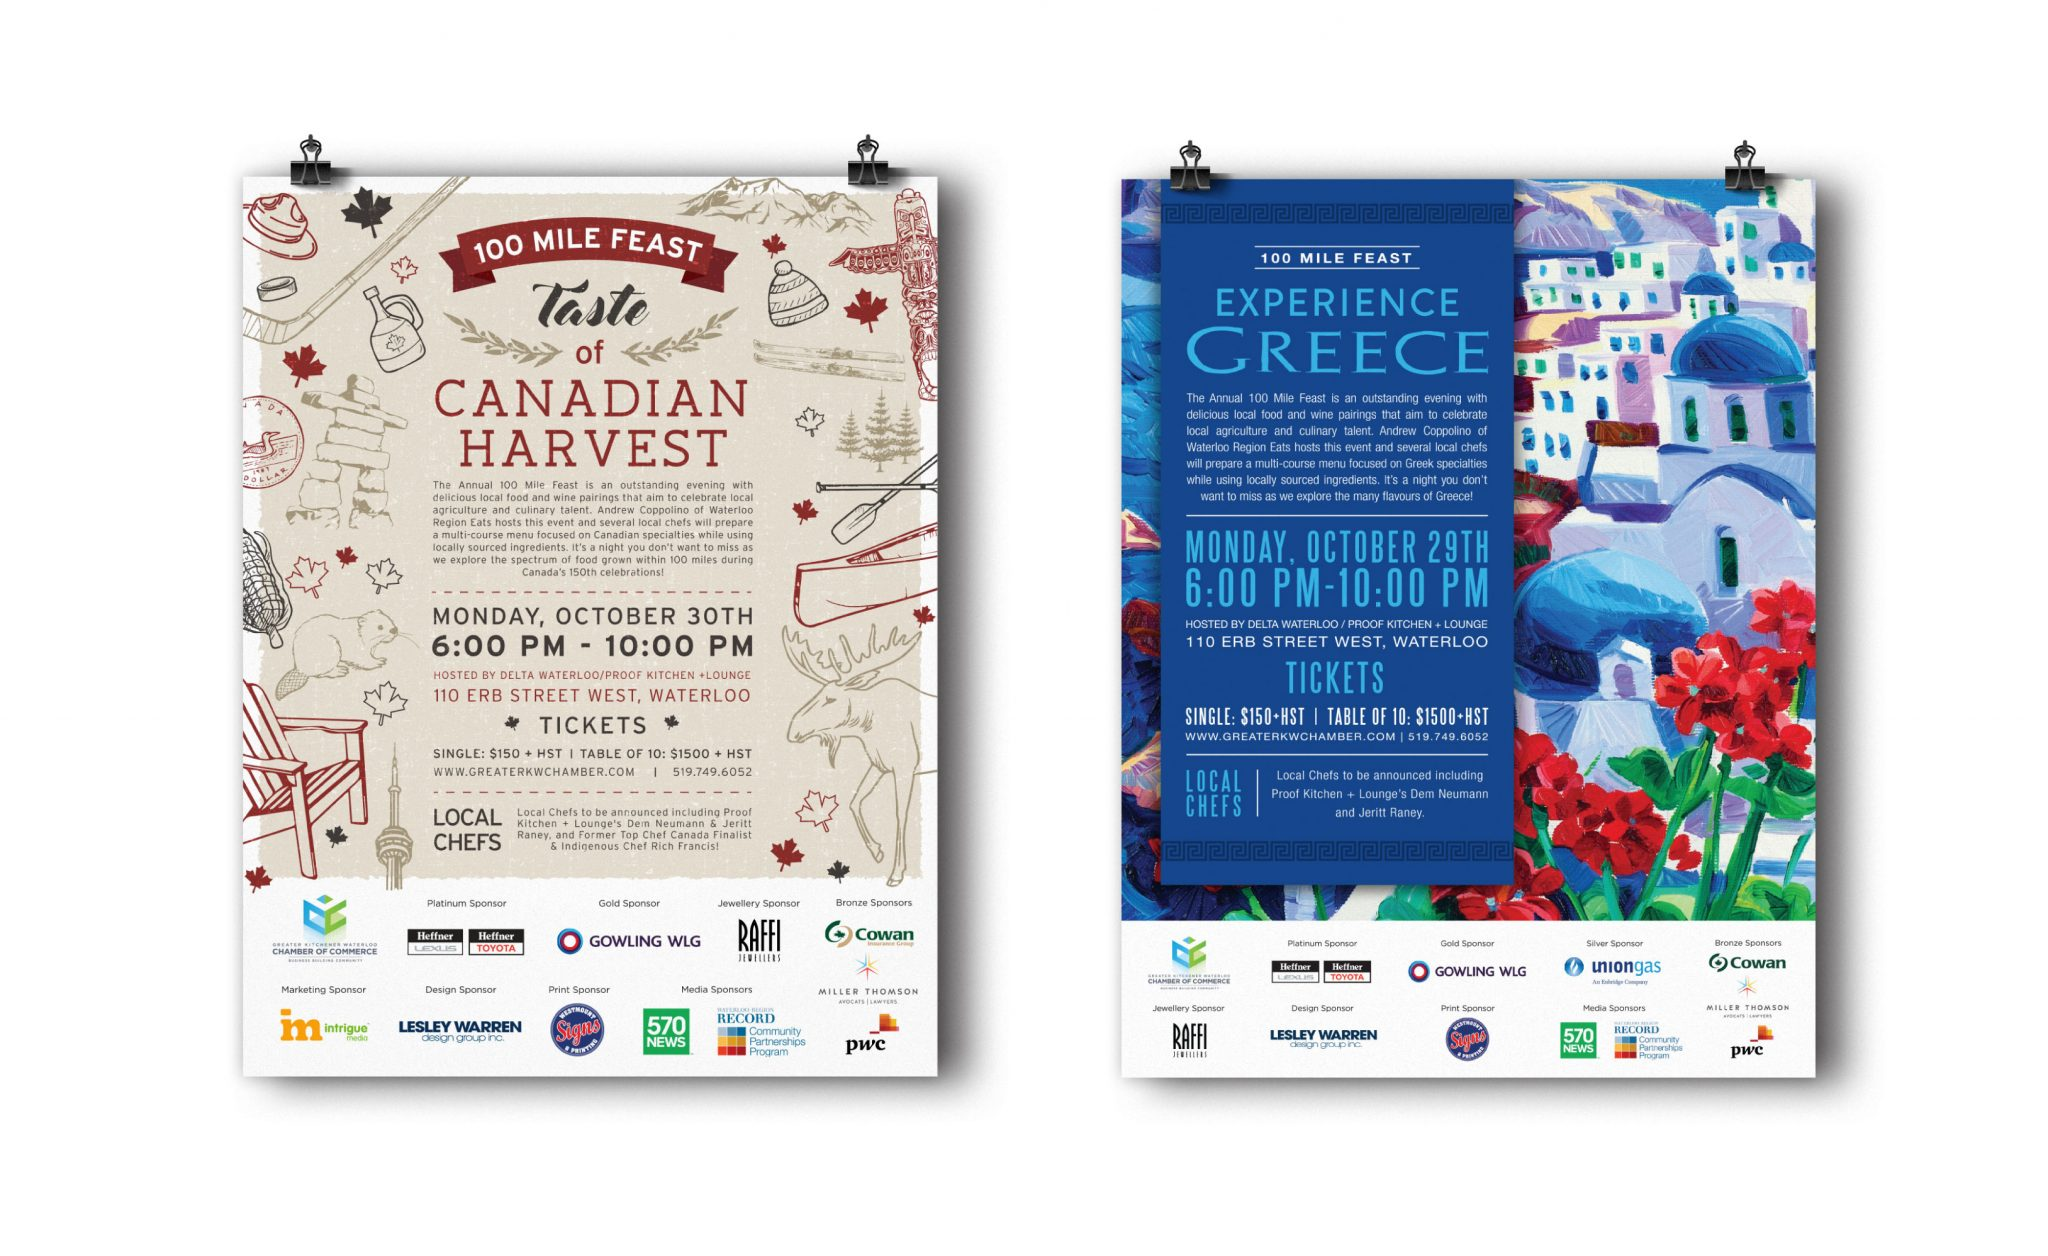 100 Mile Feast Canadian Harvest and Experience Greece Posters